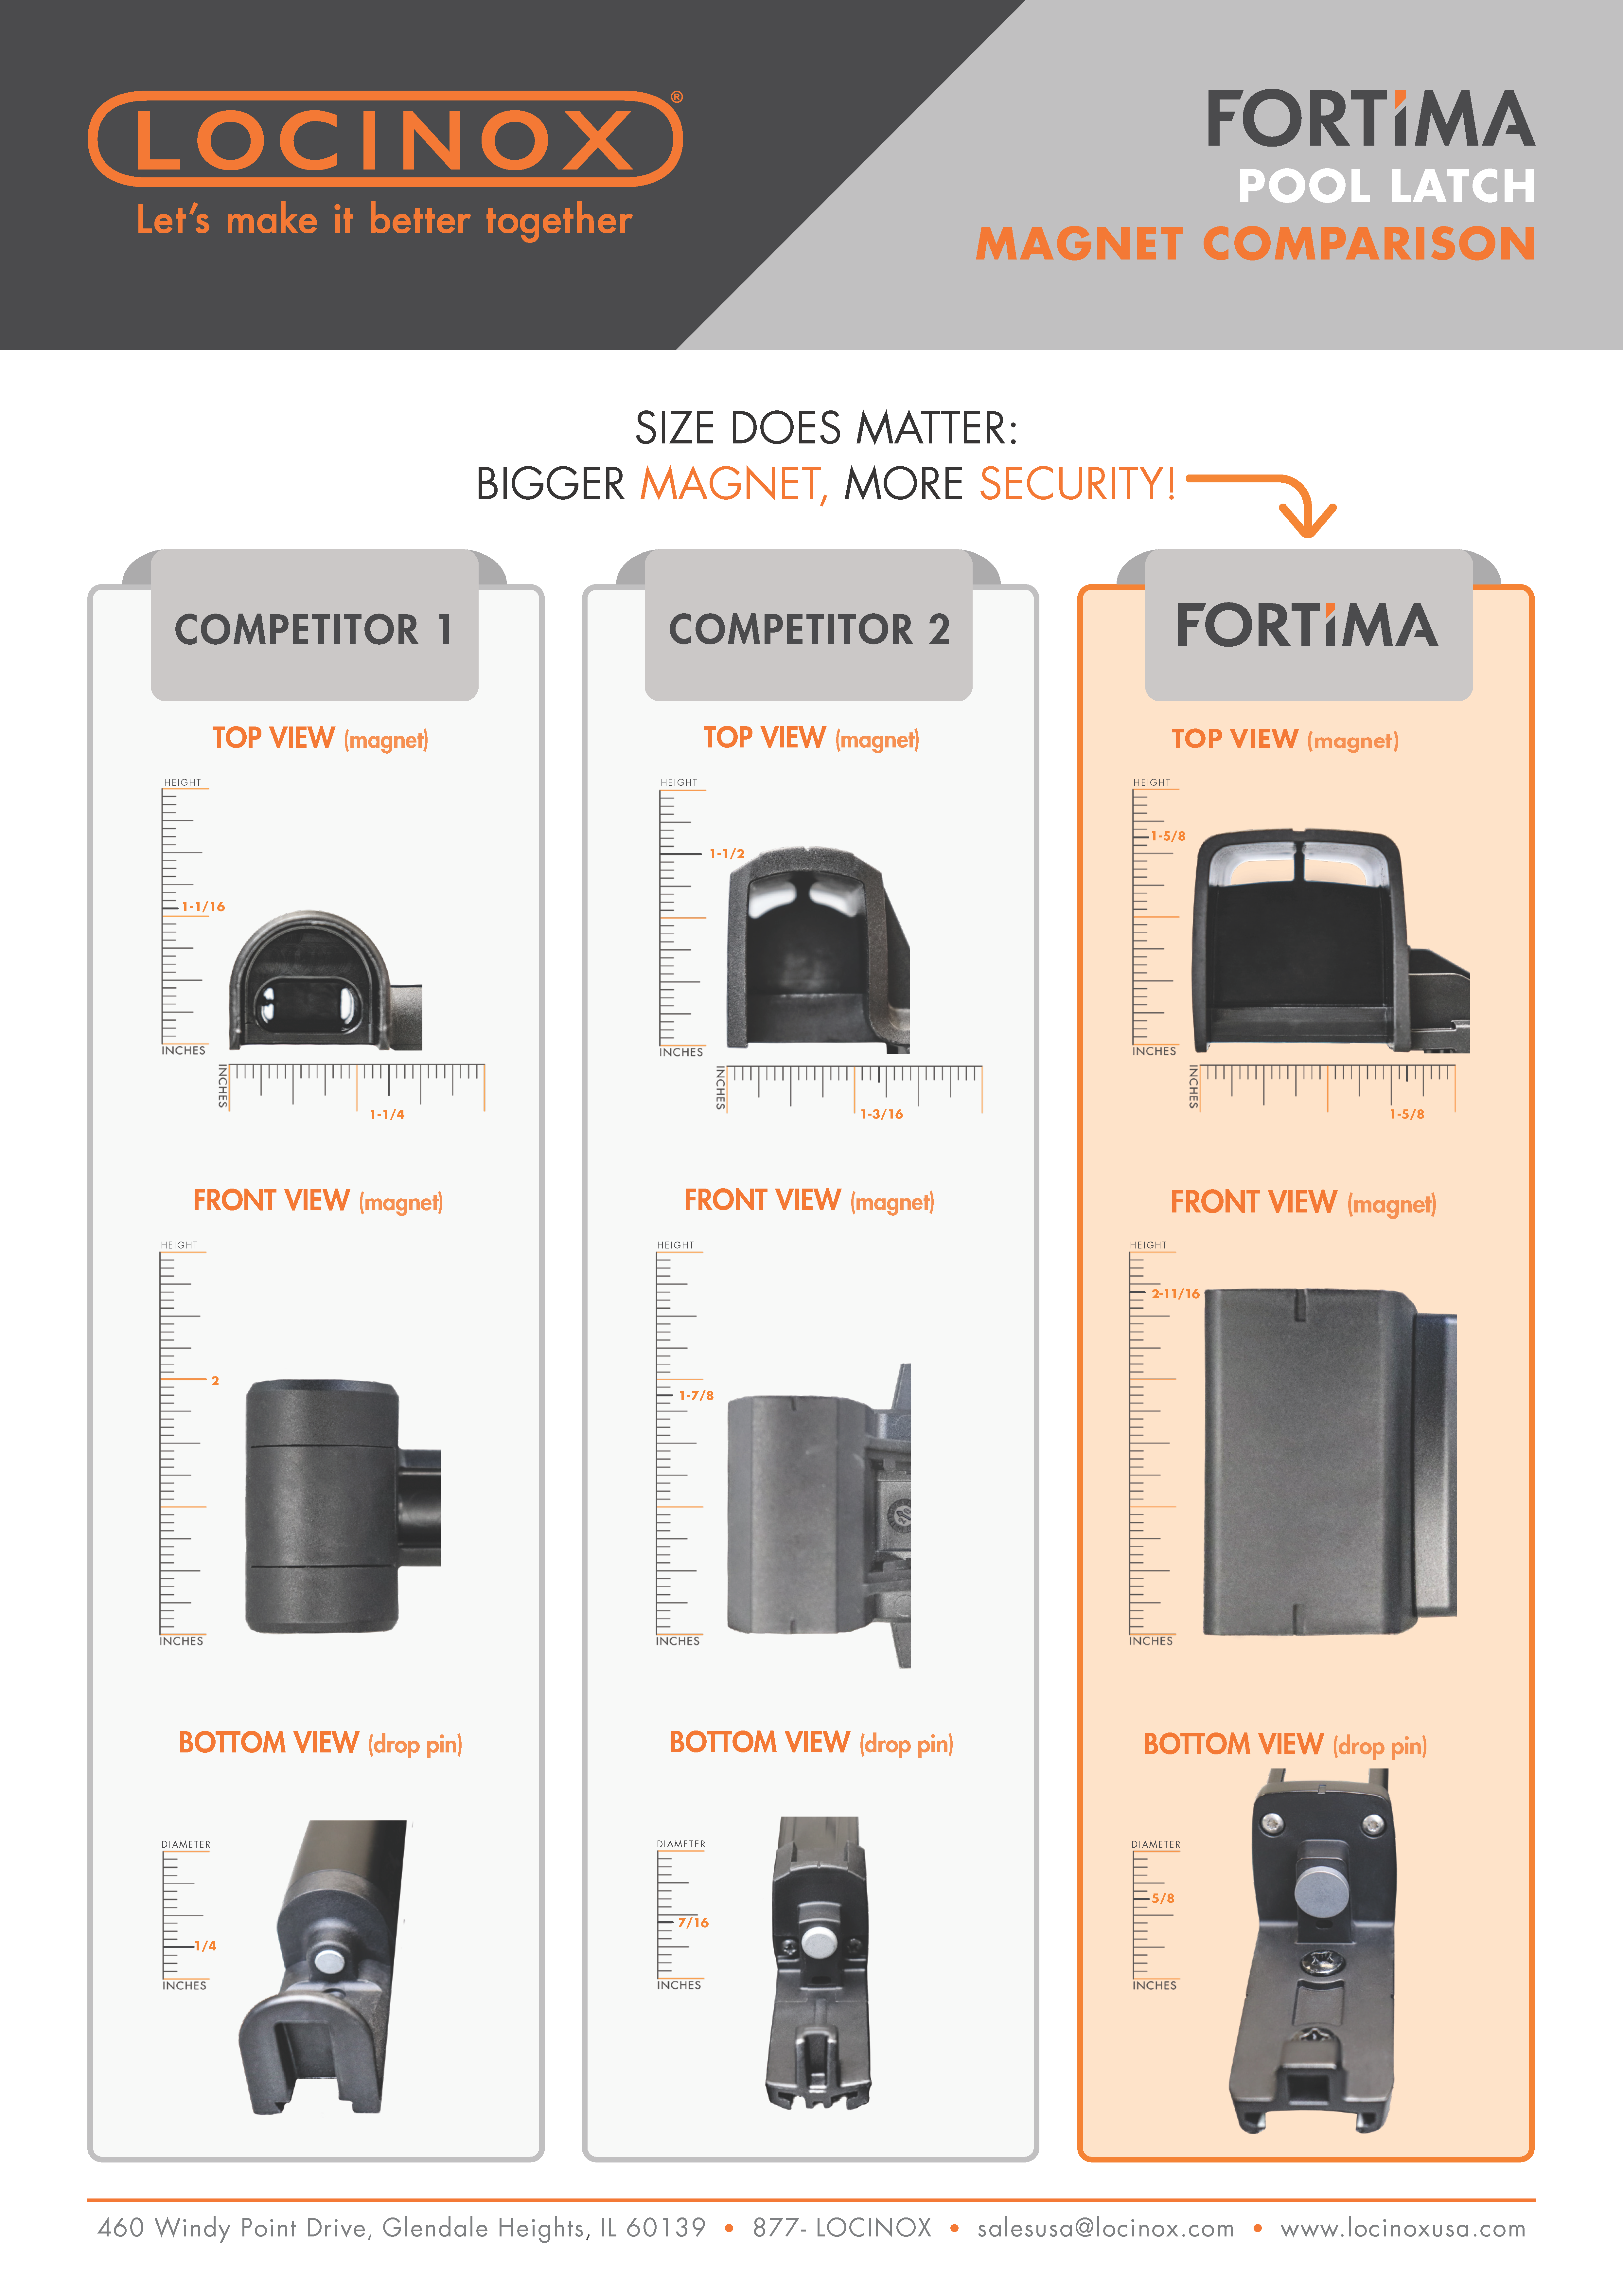 FortiMa offers a bigger, stronger magnet than the competition.